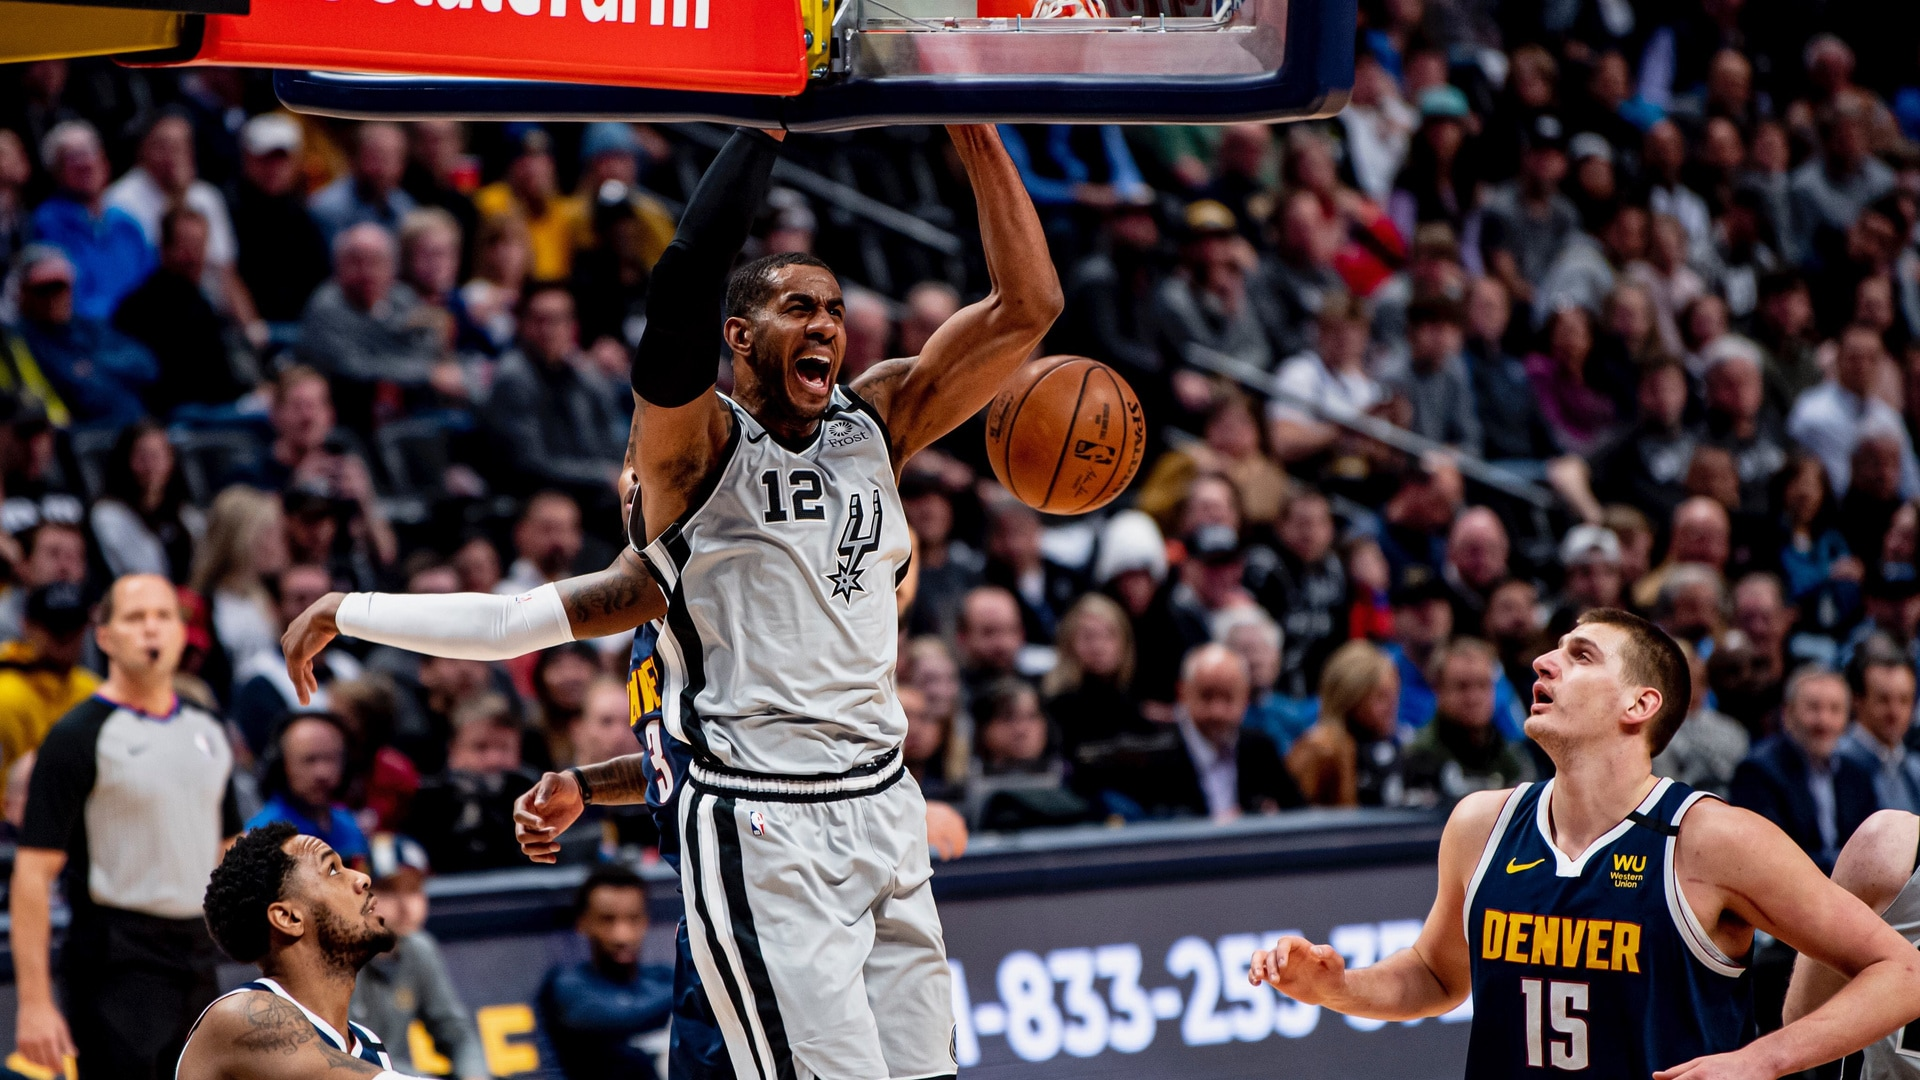 Highlights: Spurs vs. Nuggets 2/10